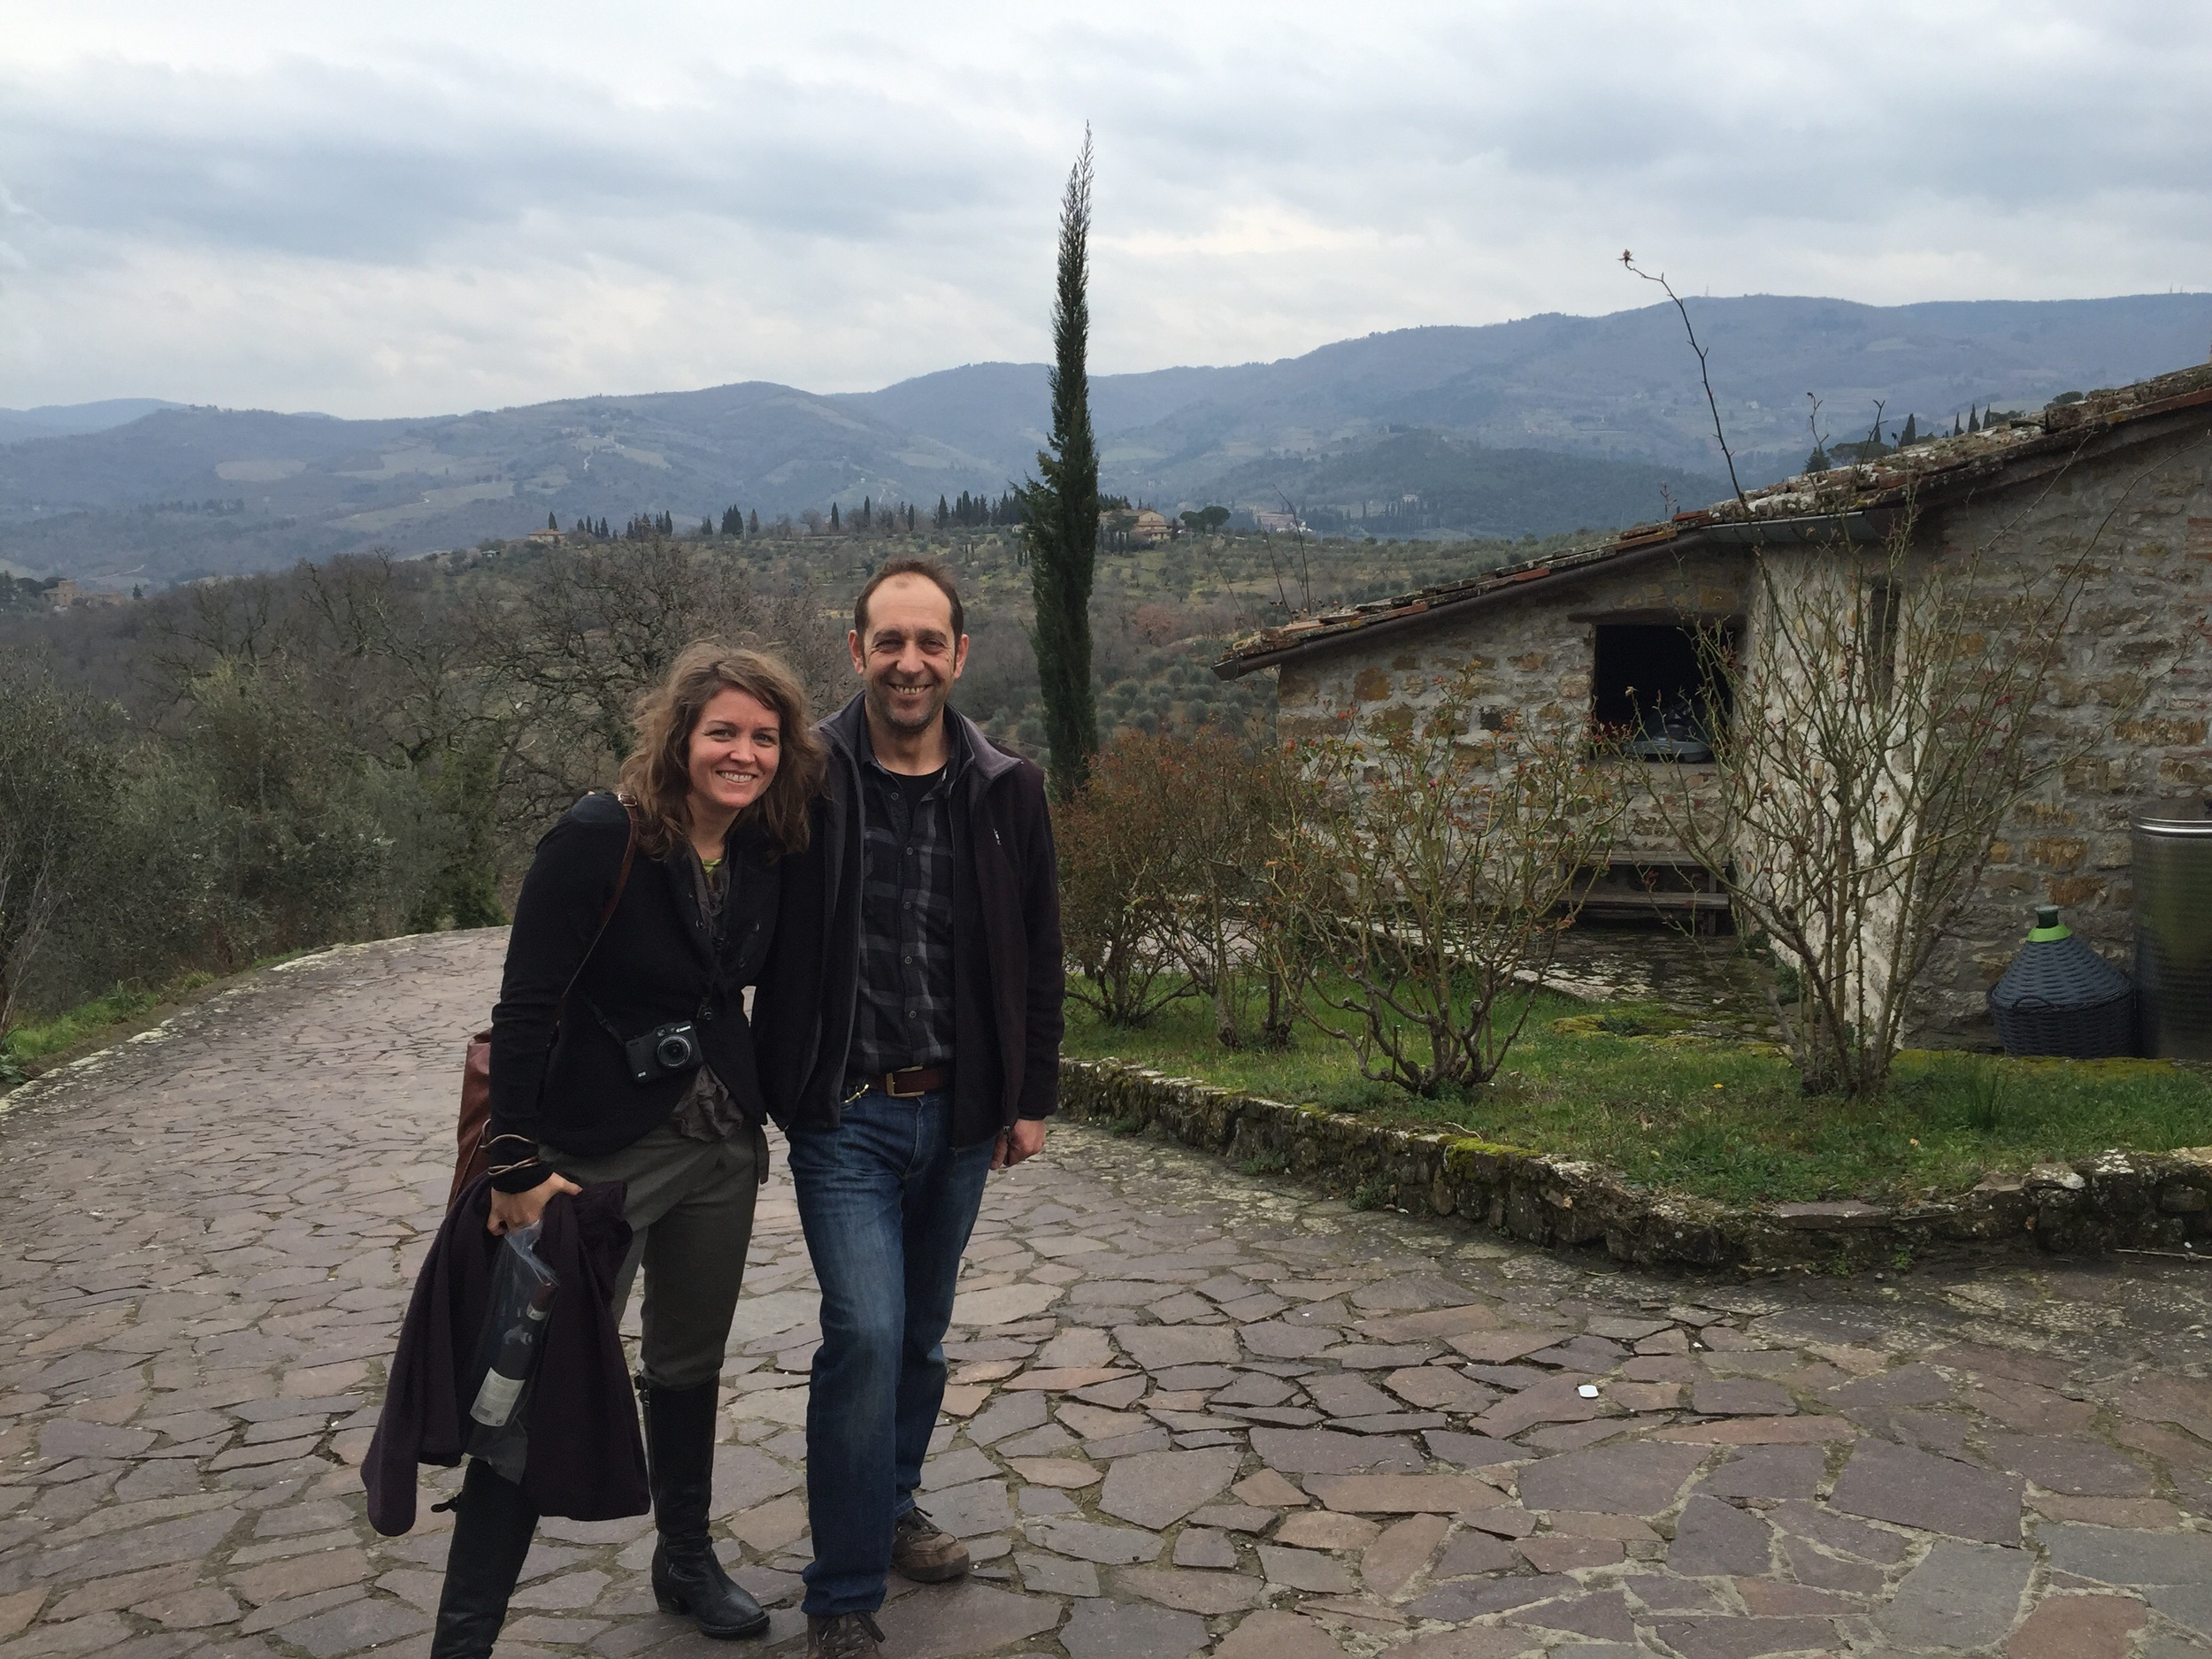 Guido of Le Fonti Winery, pioneers of organic winemaking in Panzano in Chianti. Enjoy Le Fonti at Pretto or contact Le Fonti for a tasting tour.